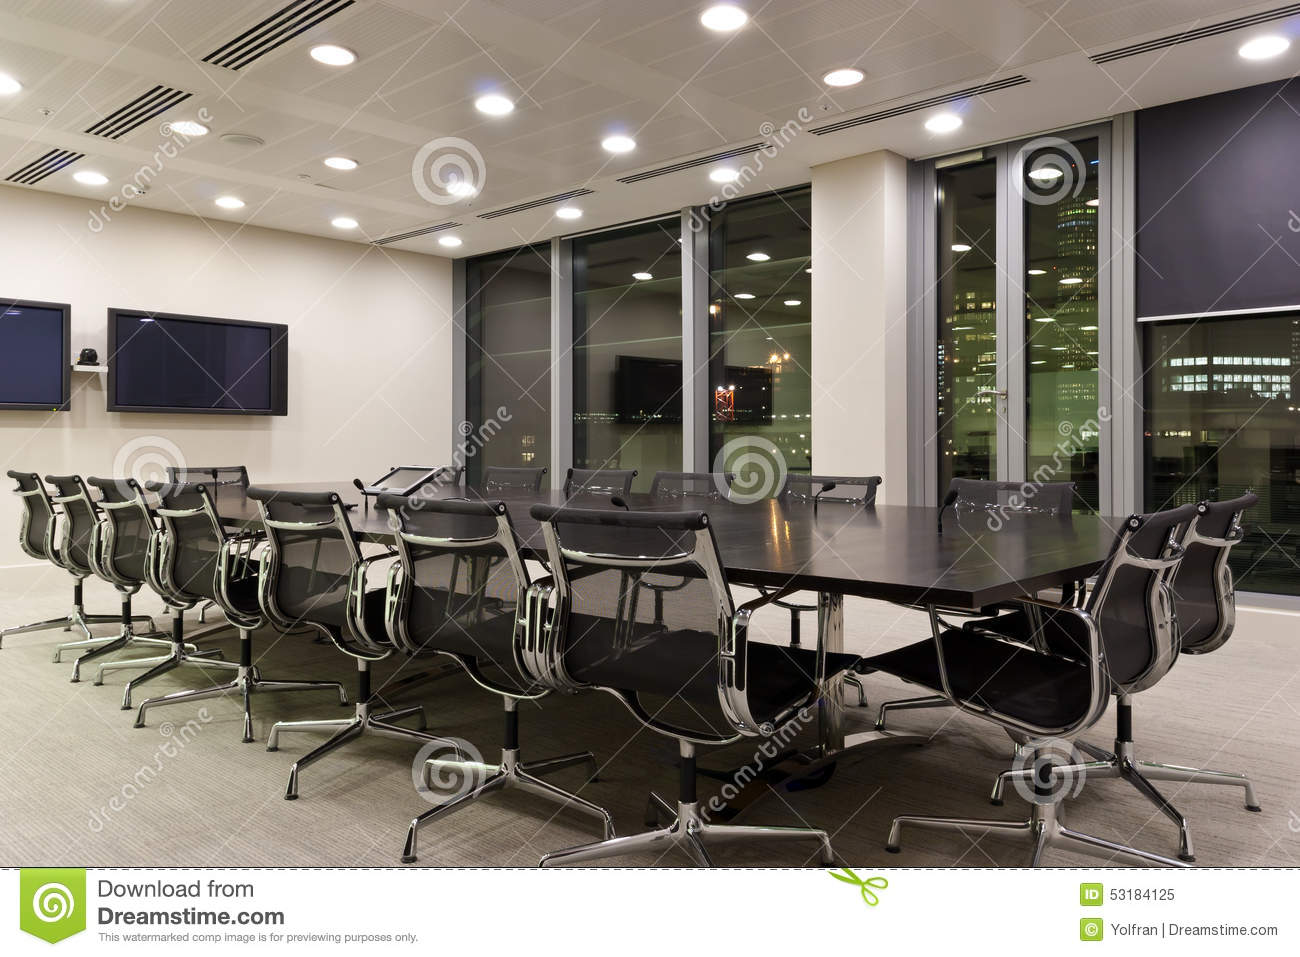 City fice Meeting Room At Night Stock Image